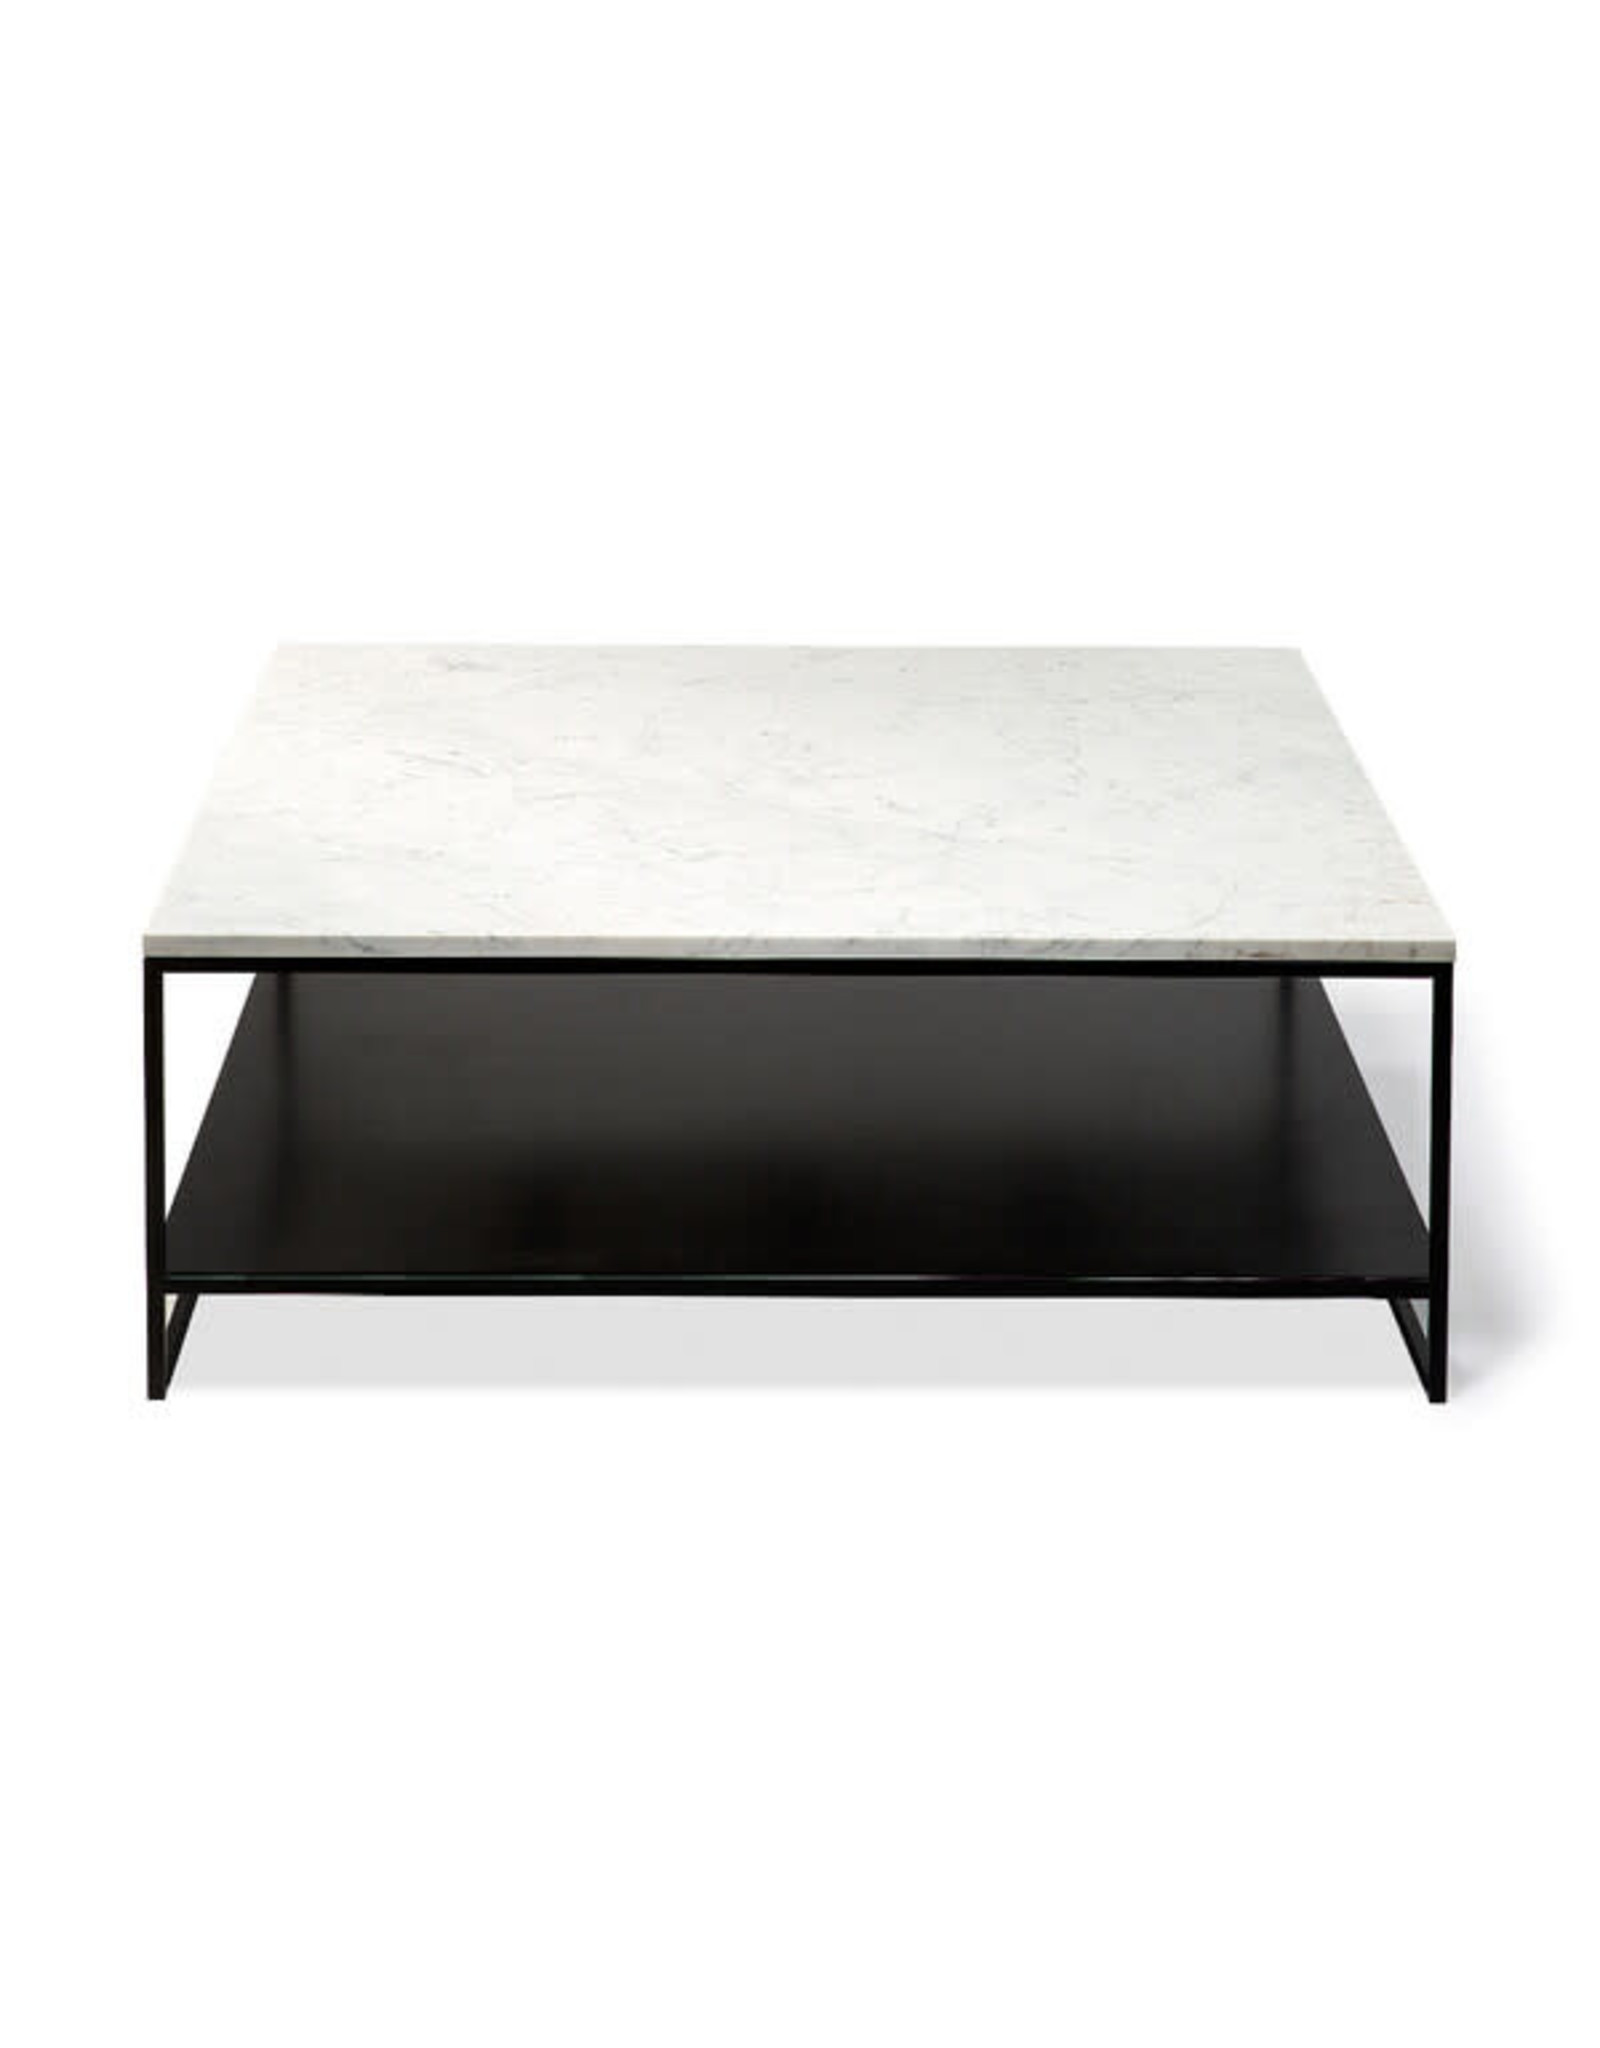 Ethnicraft Stone Coffee Table - Square